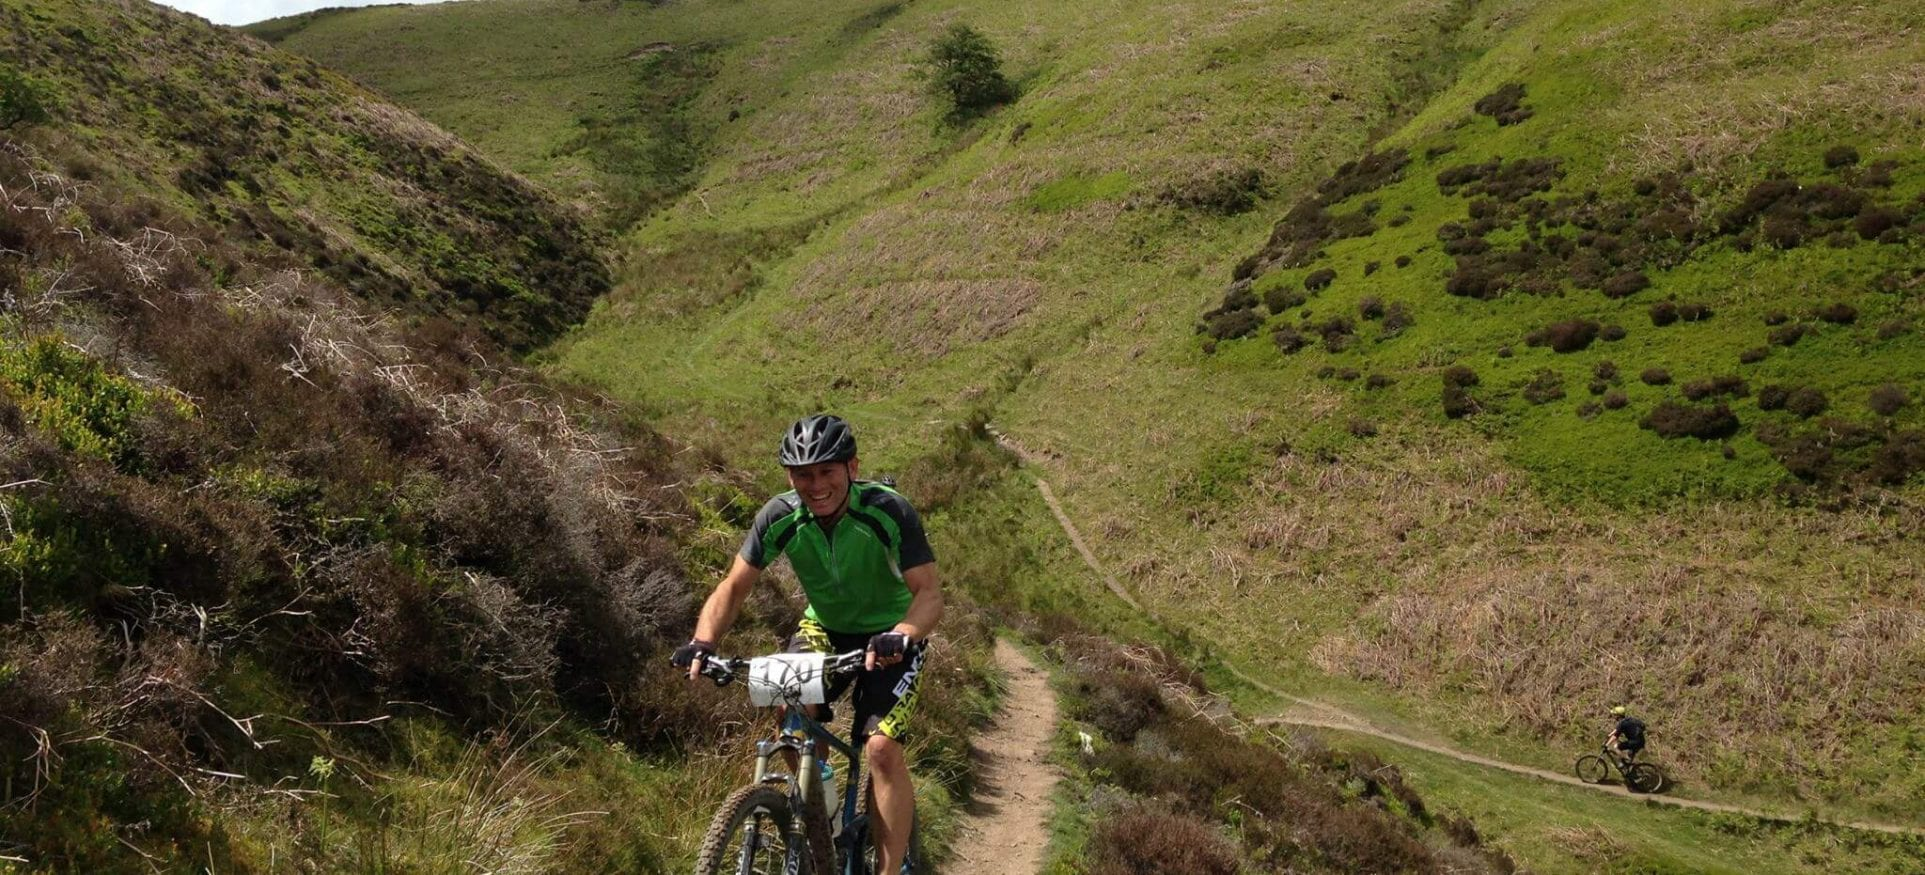 all stretton bunkhouse eco hostel sustainable transport discount